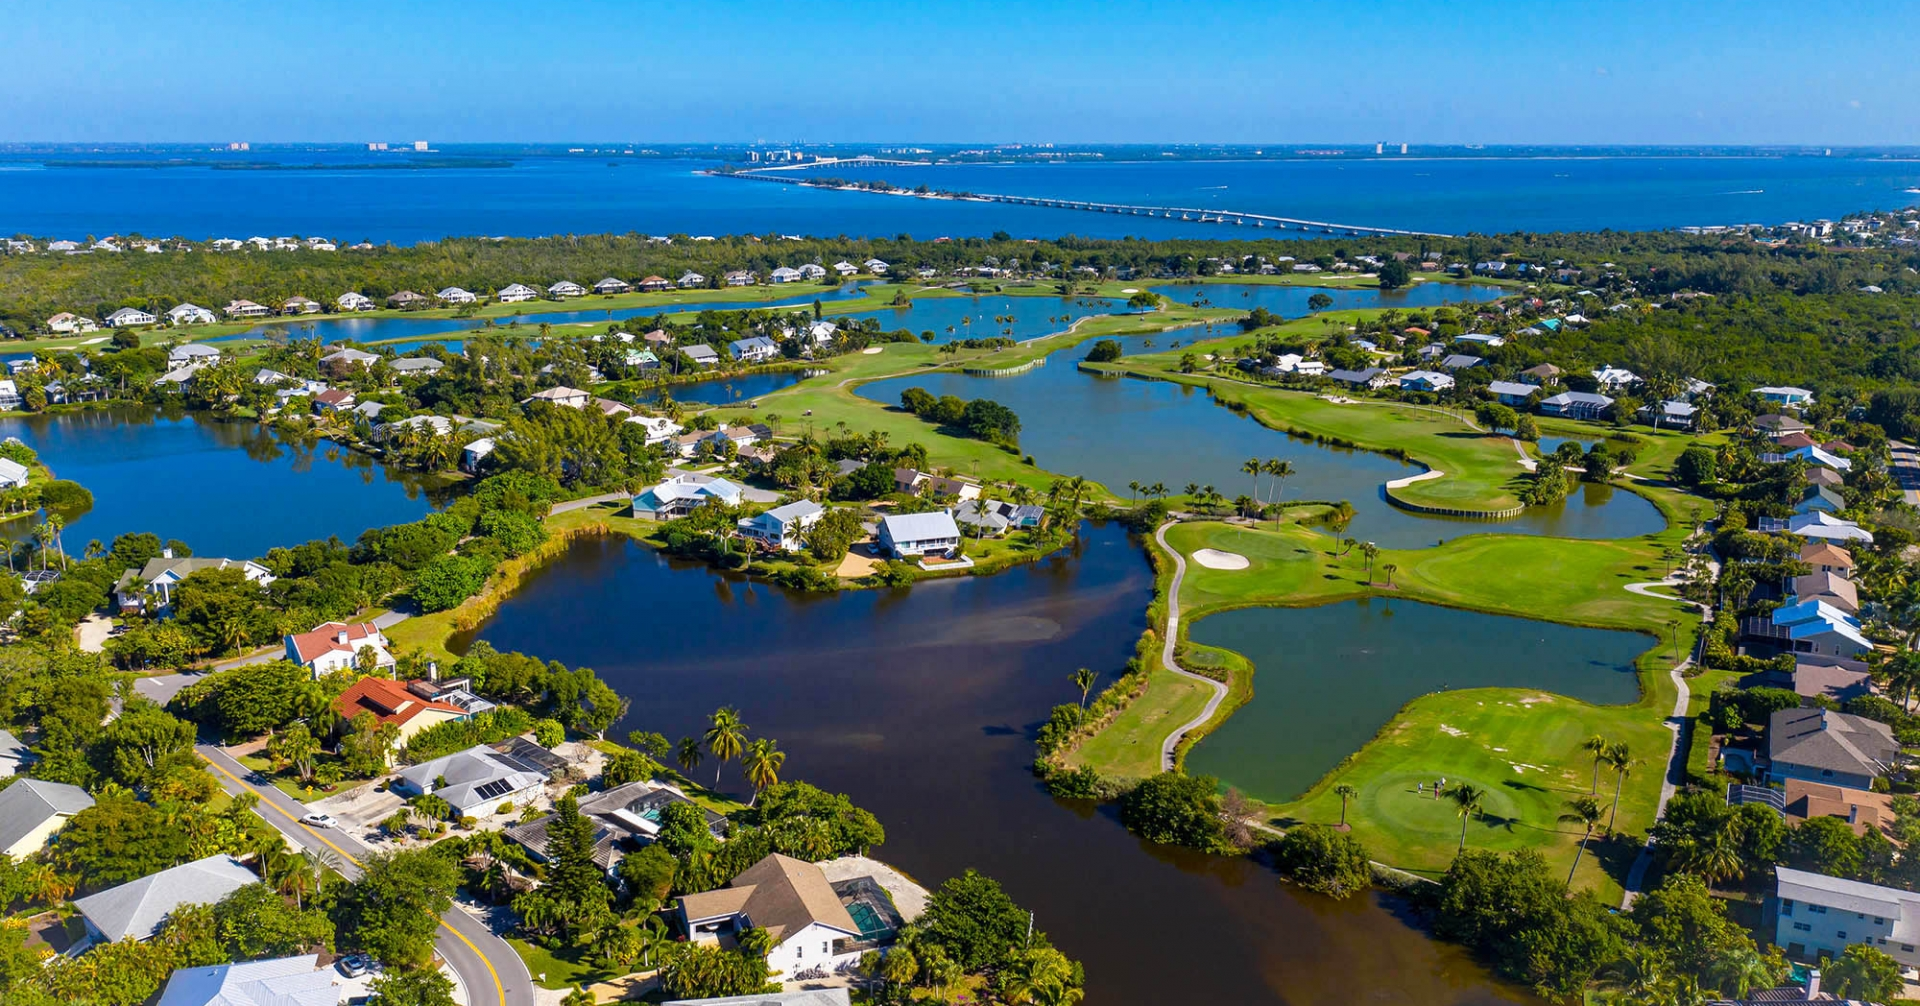 The Dunes golf course from above